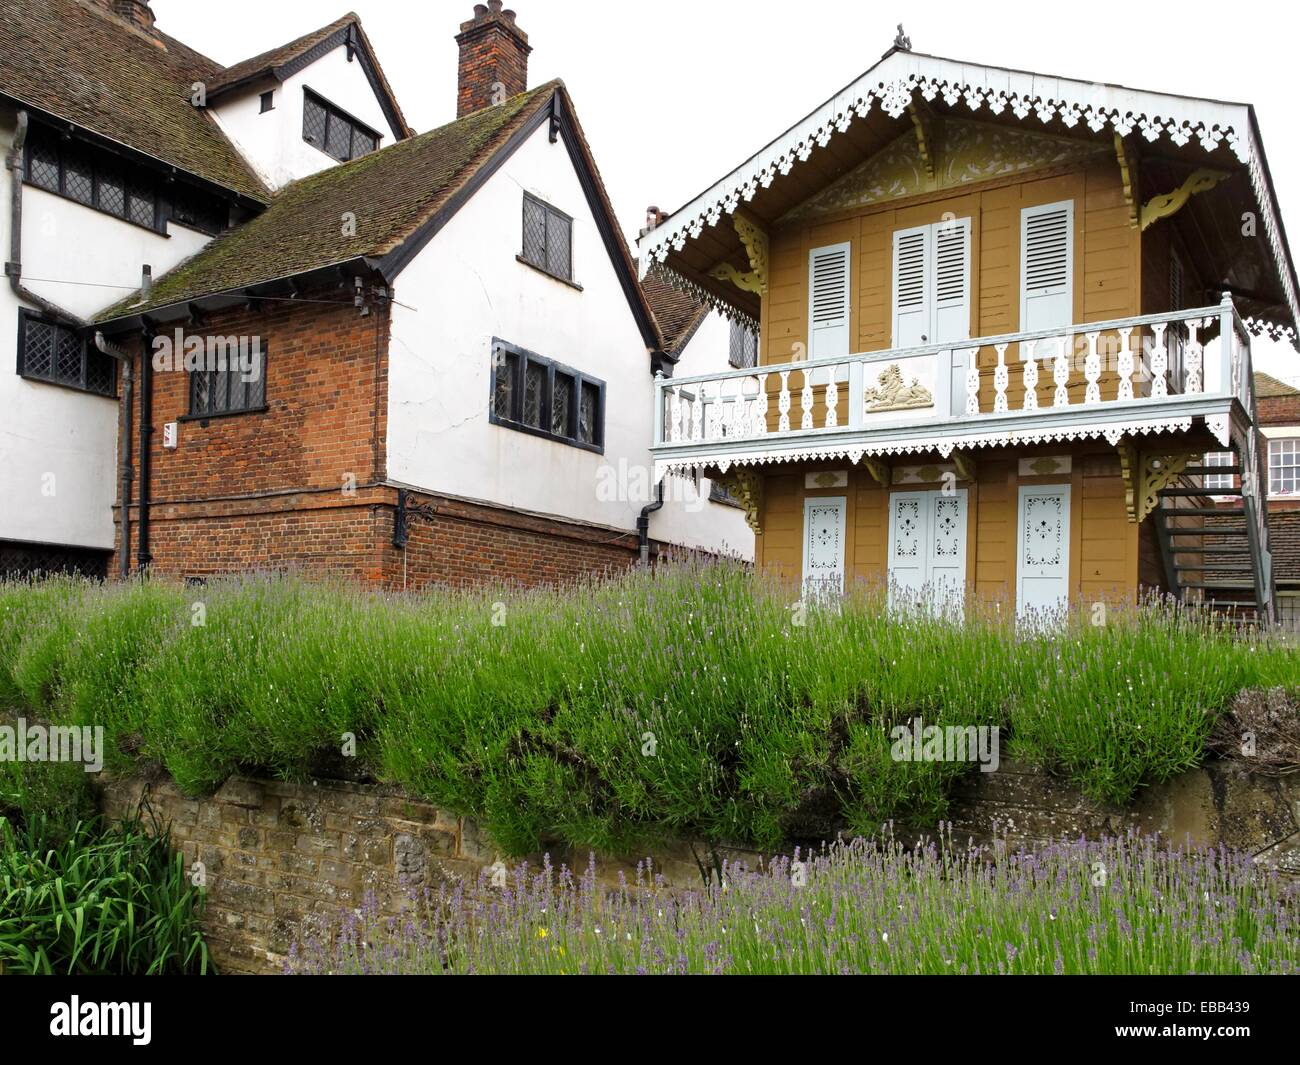 1865 1870 architecture balcony British Isles building built structure chalet Charles Dickens city color image day Stock Photo